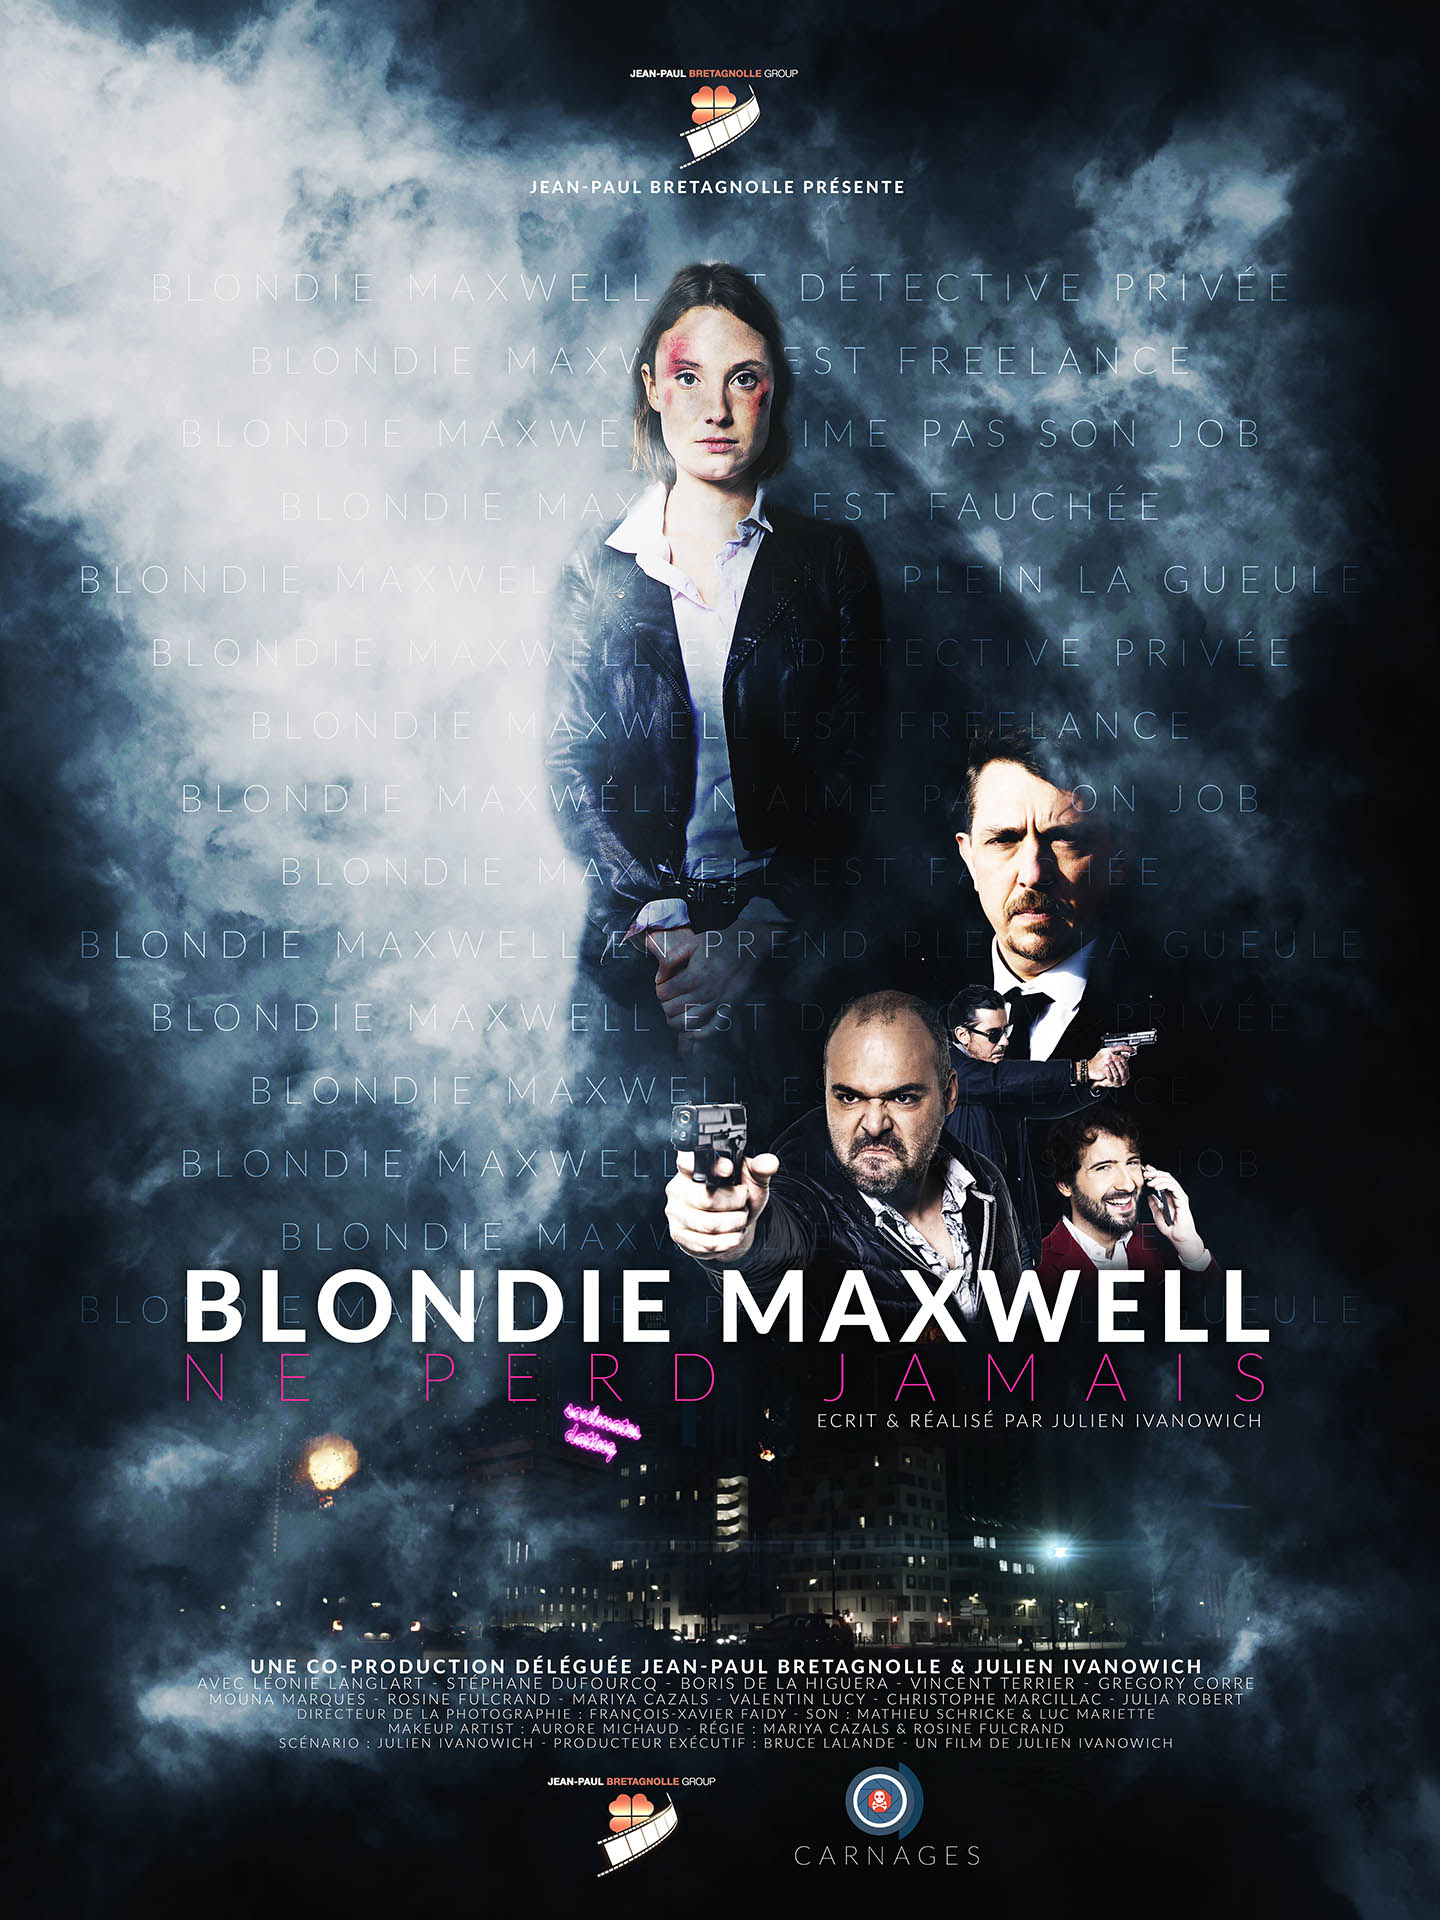 Blondie Maxwell Never Loses (2020) WebRip 720p Dual Audio [Hindi (Voice Over) Dubbed + French] [Full Movie]